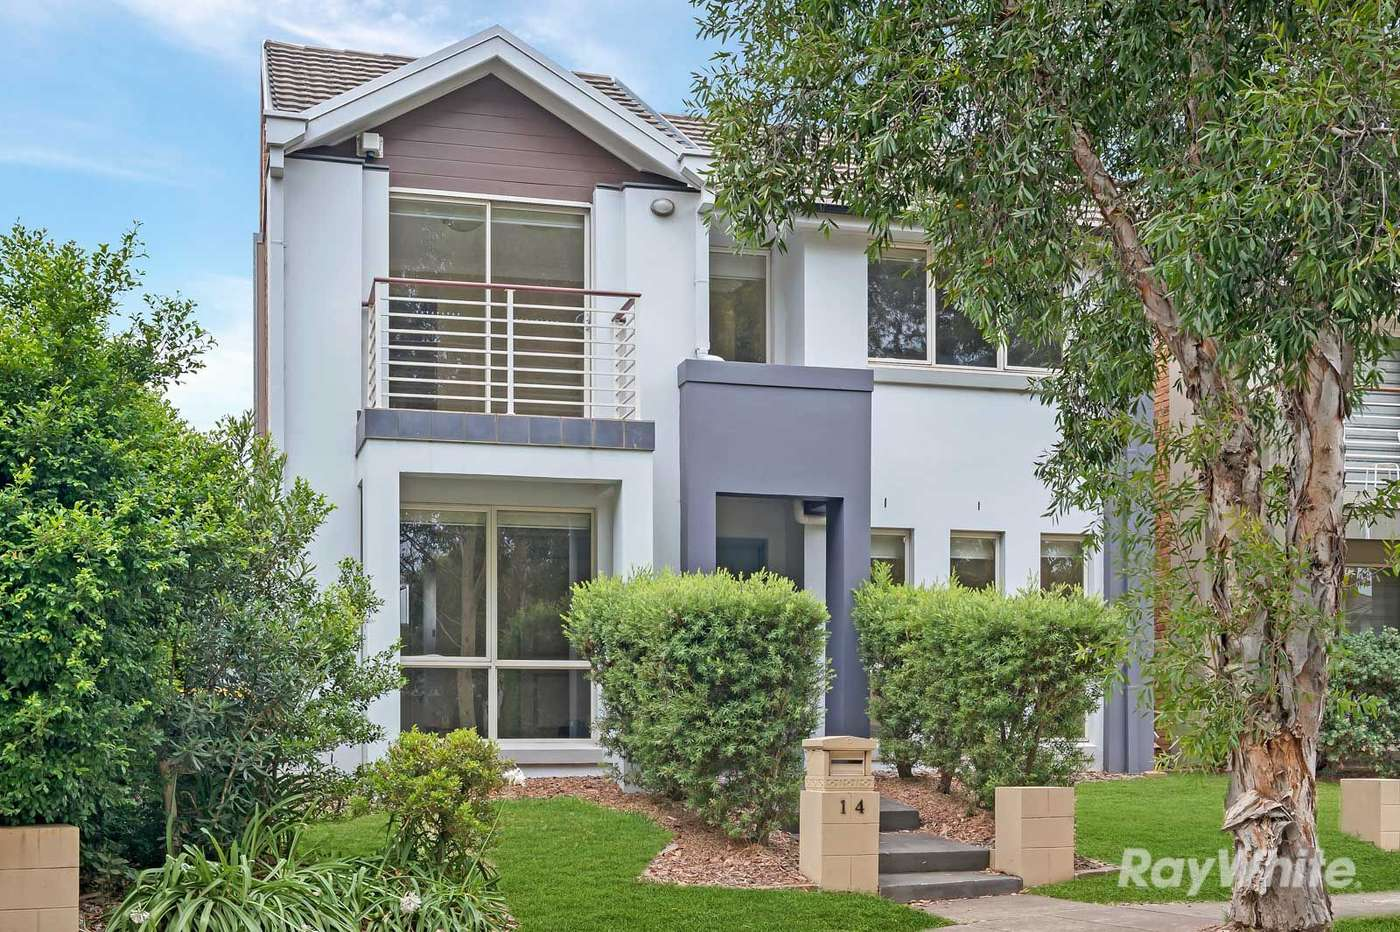 Main view of Homely house listing, 14 Castleford Terrace, Stanhope Gardens, NSW 2768